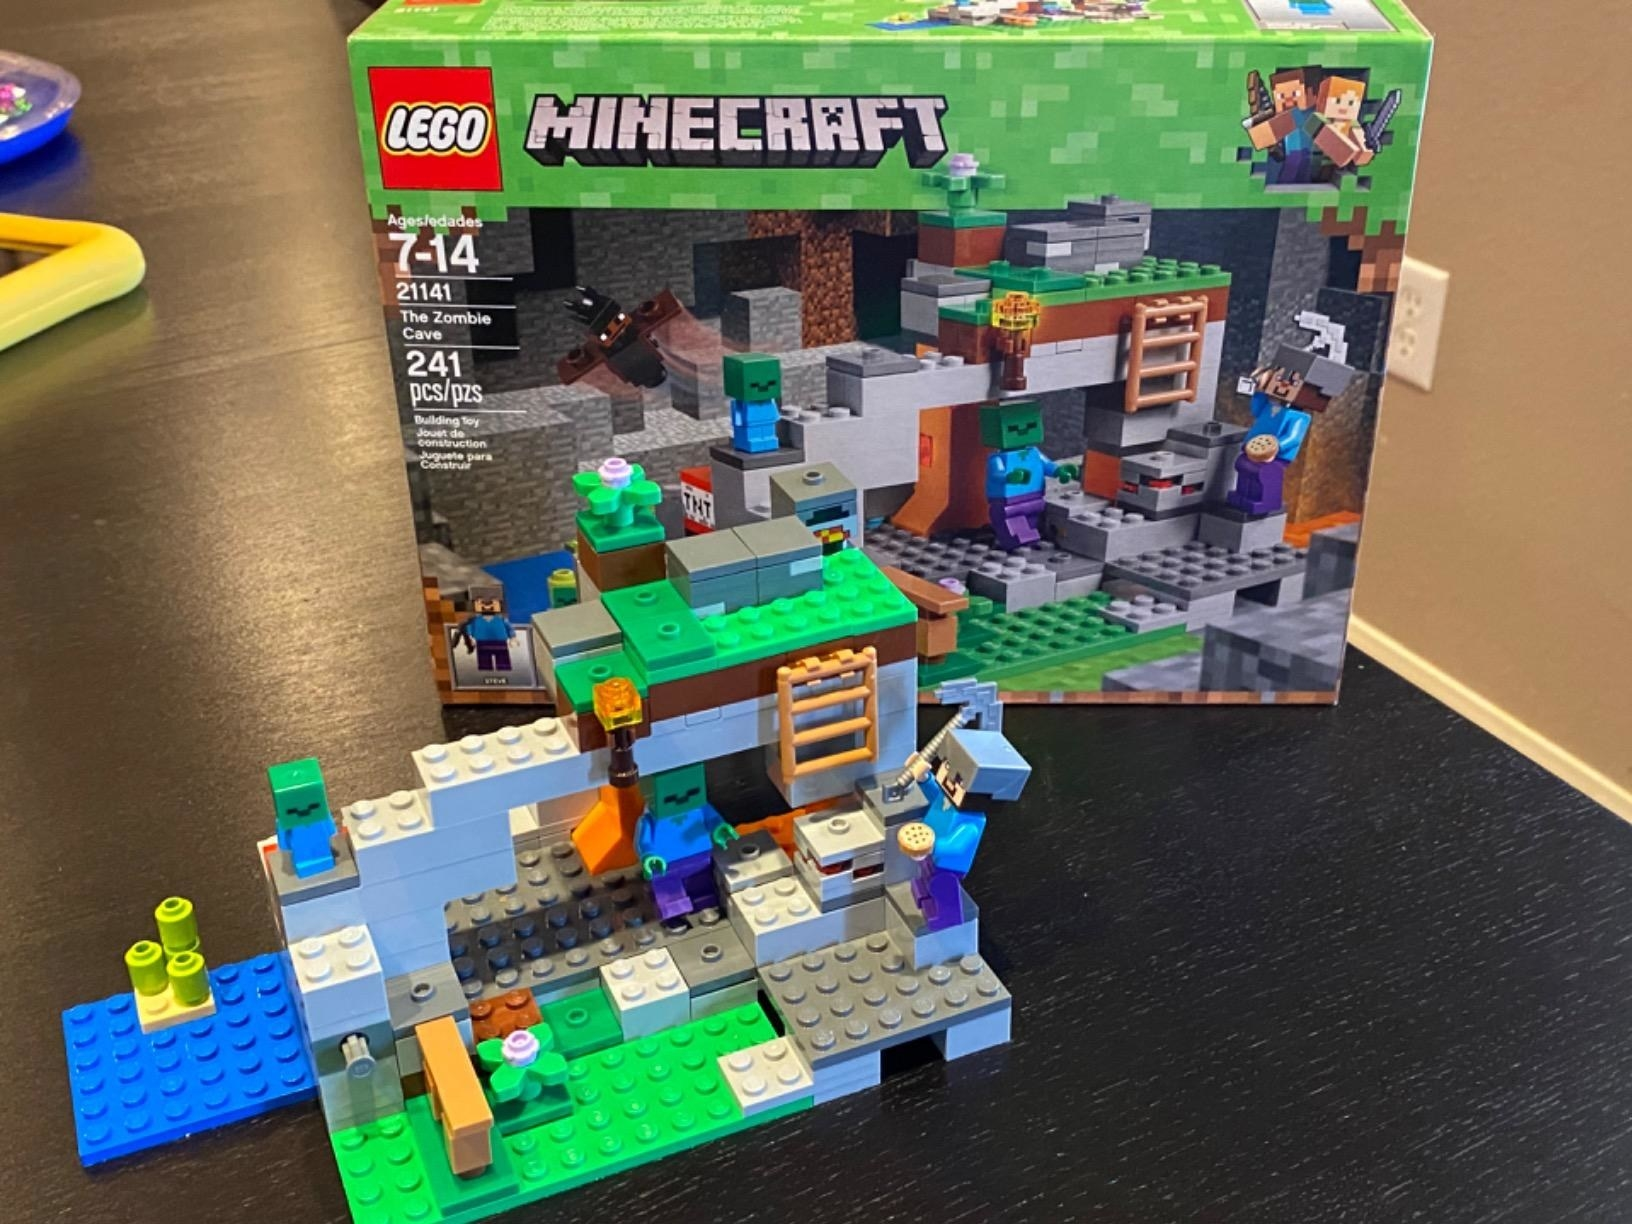 reviewer's lego set being built